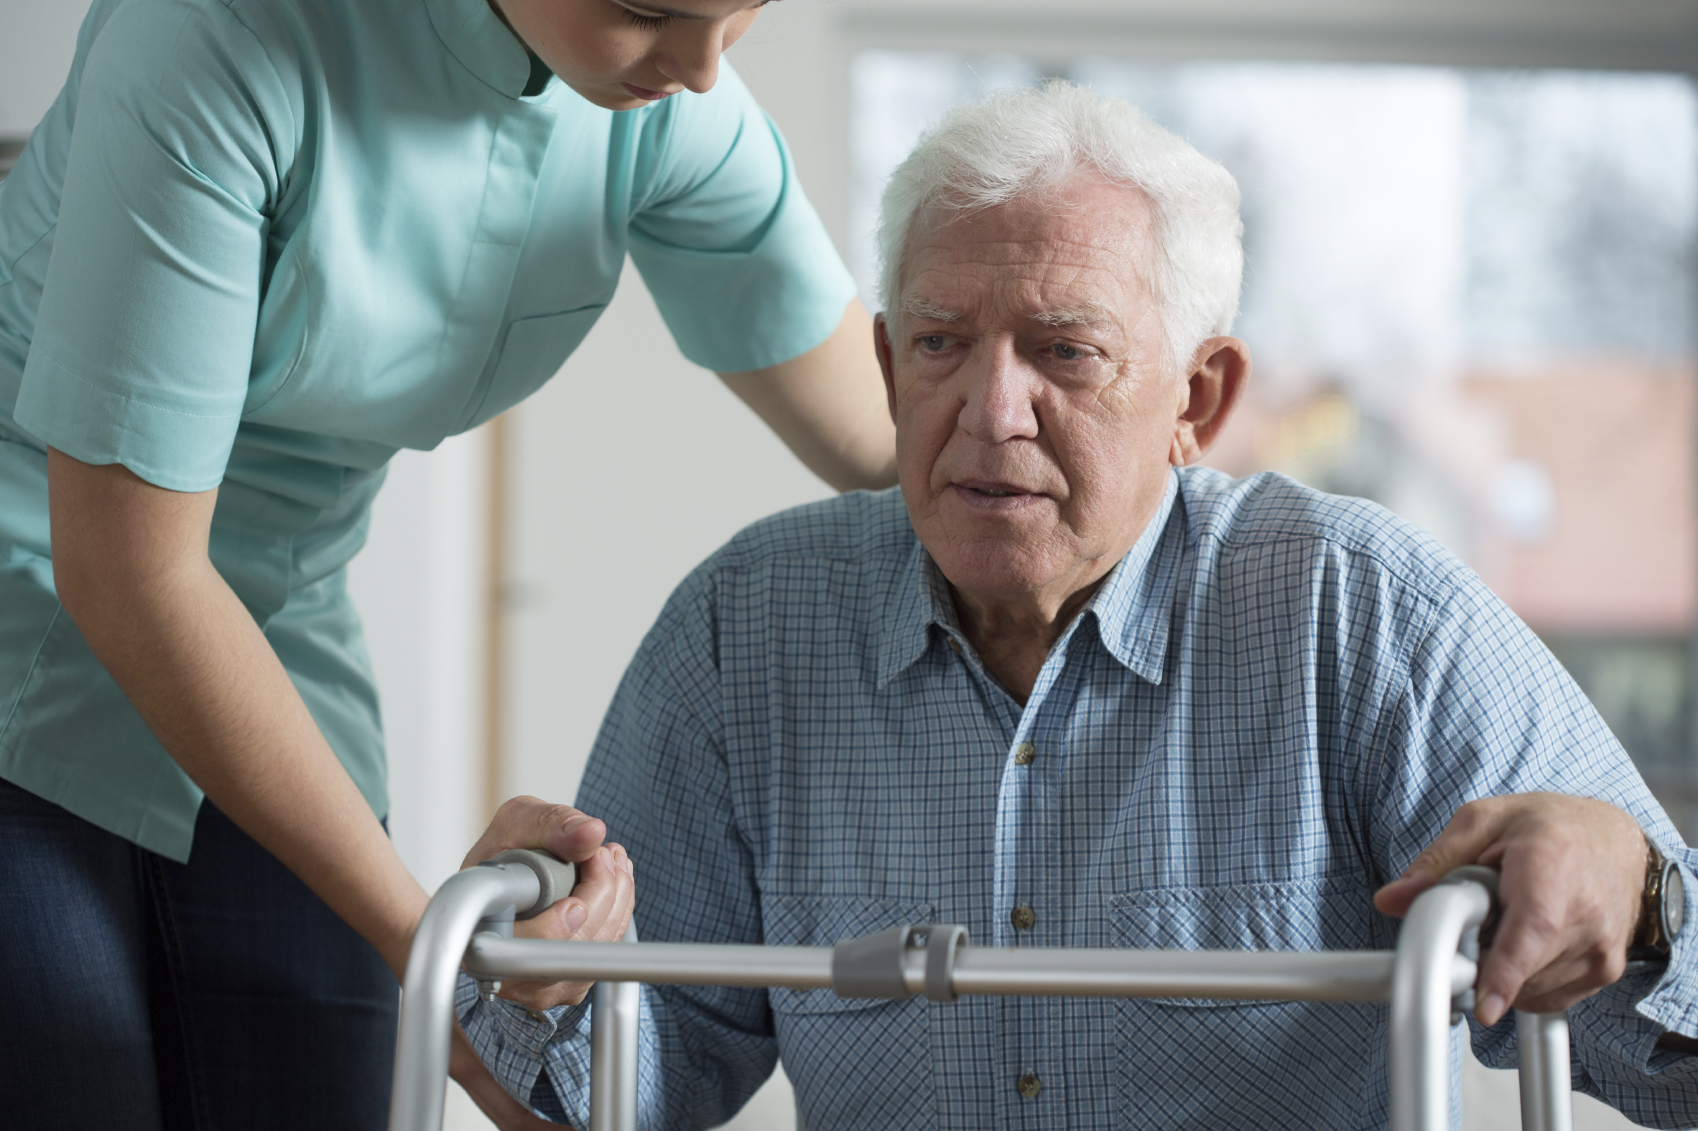 Many Seniors Have Trouble With Home Health Aide Adjusting